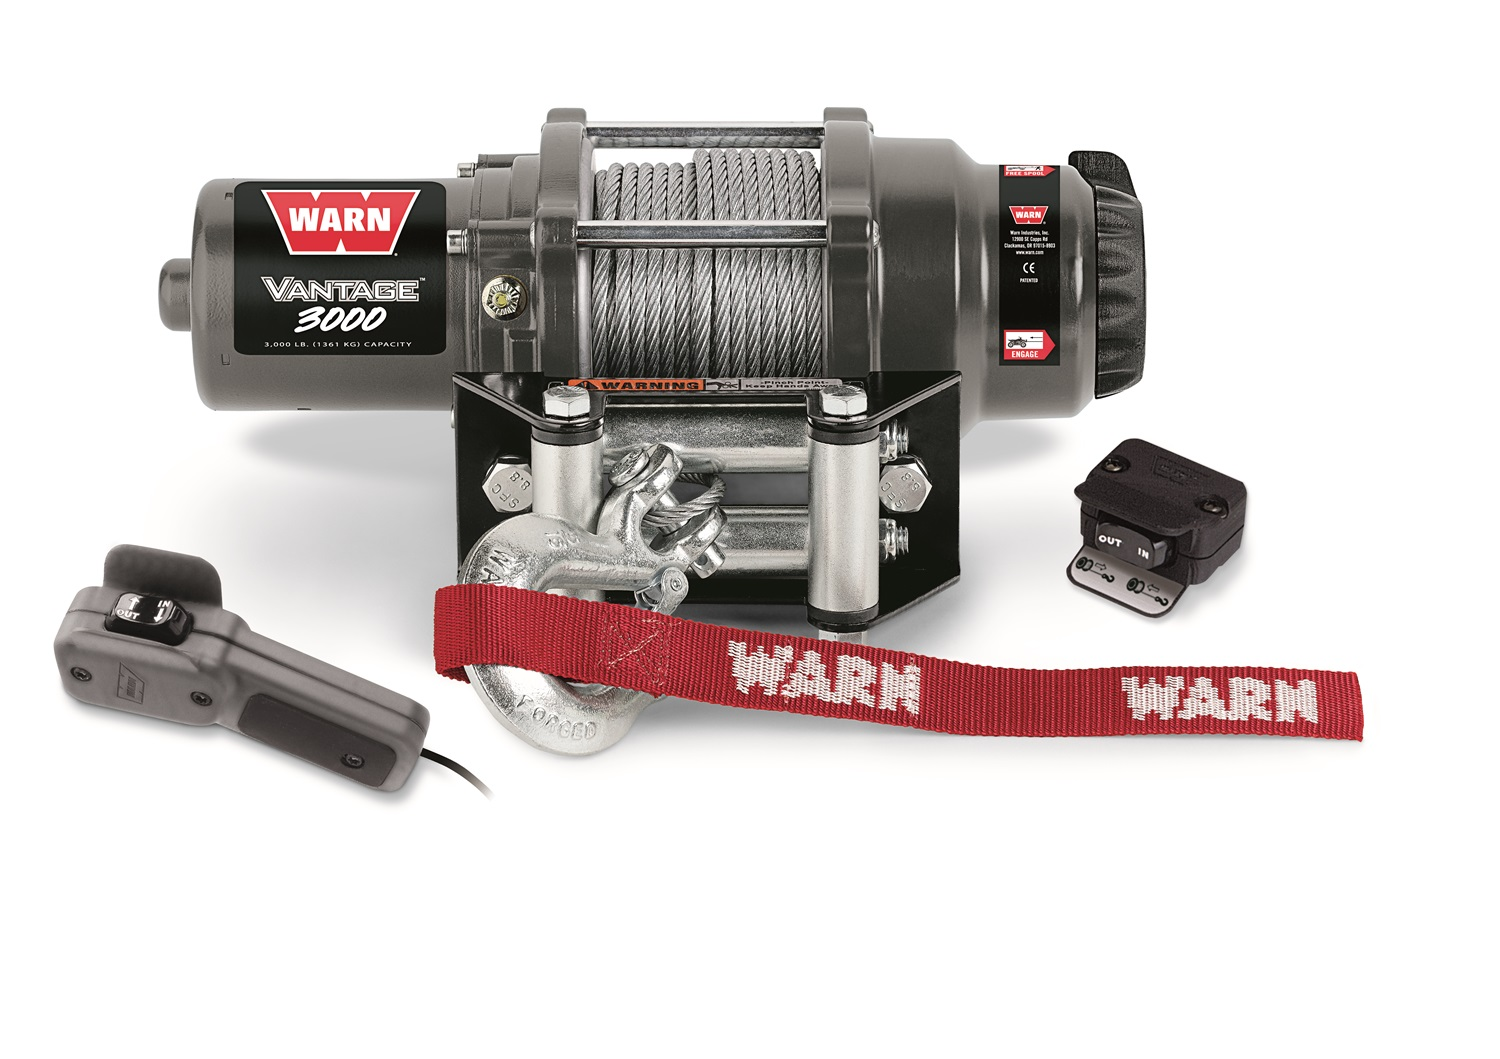 wiring diagram for warn winch on atv 3 prong dryer outlet vantage 3000 get free image about